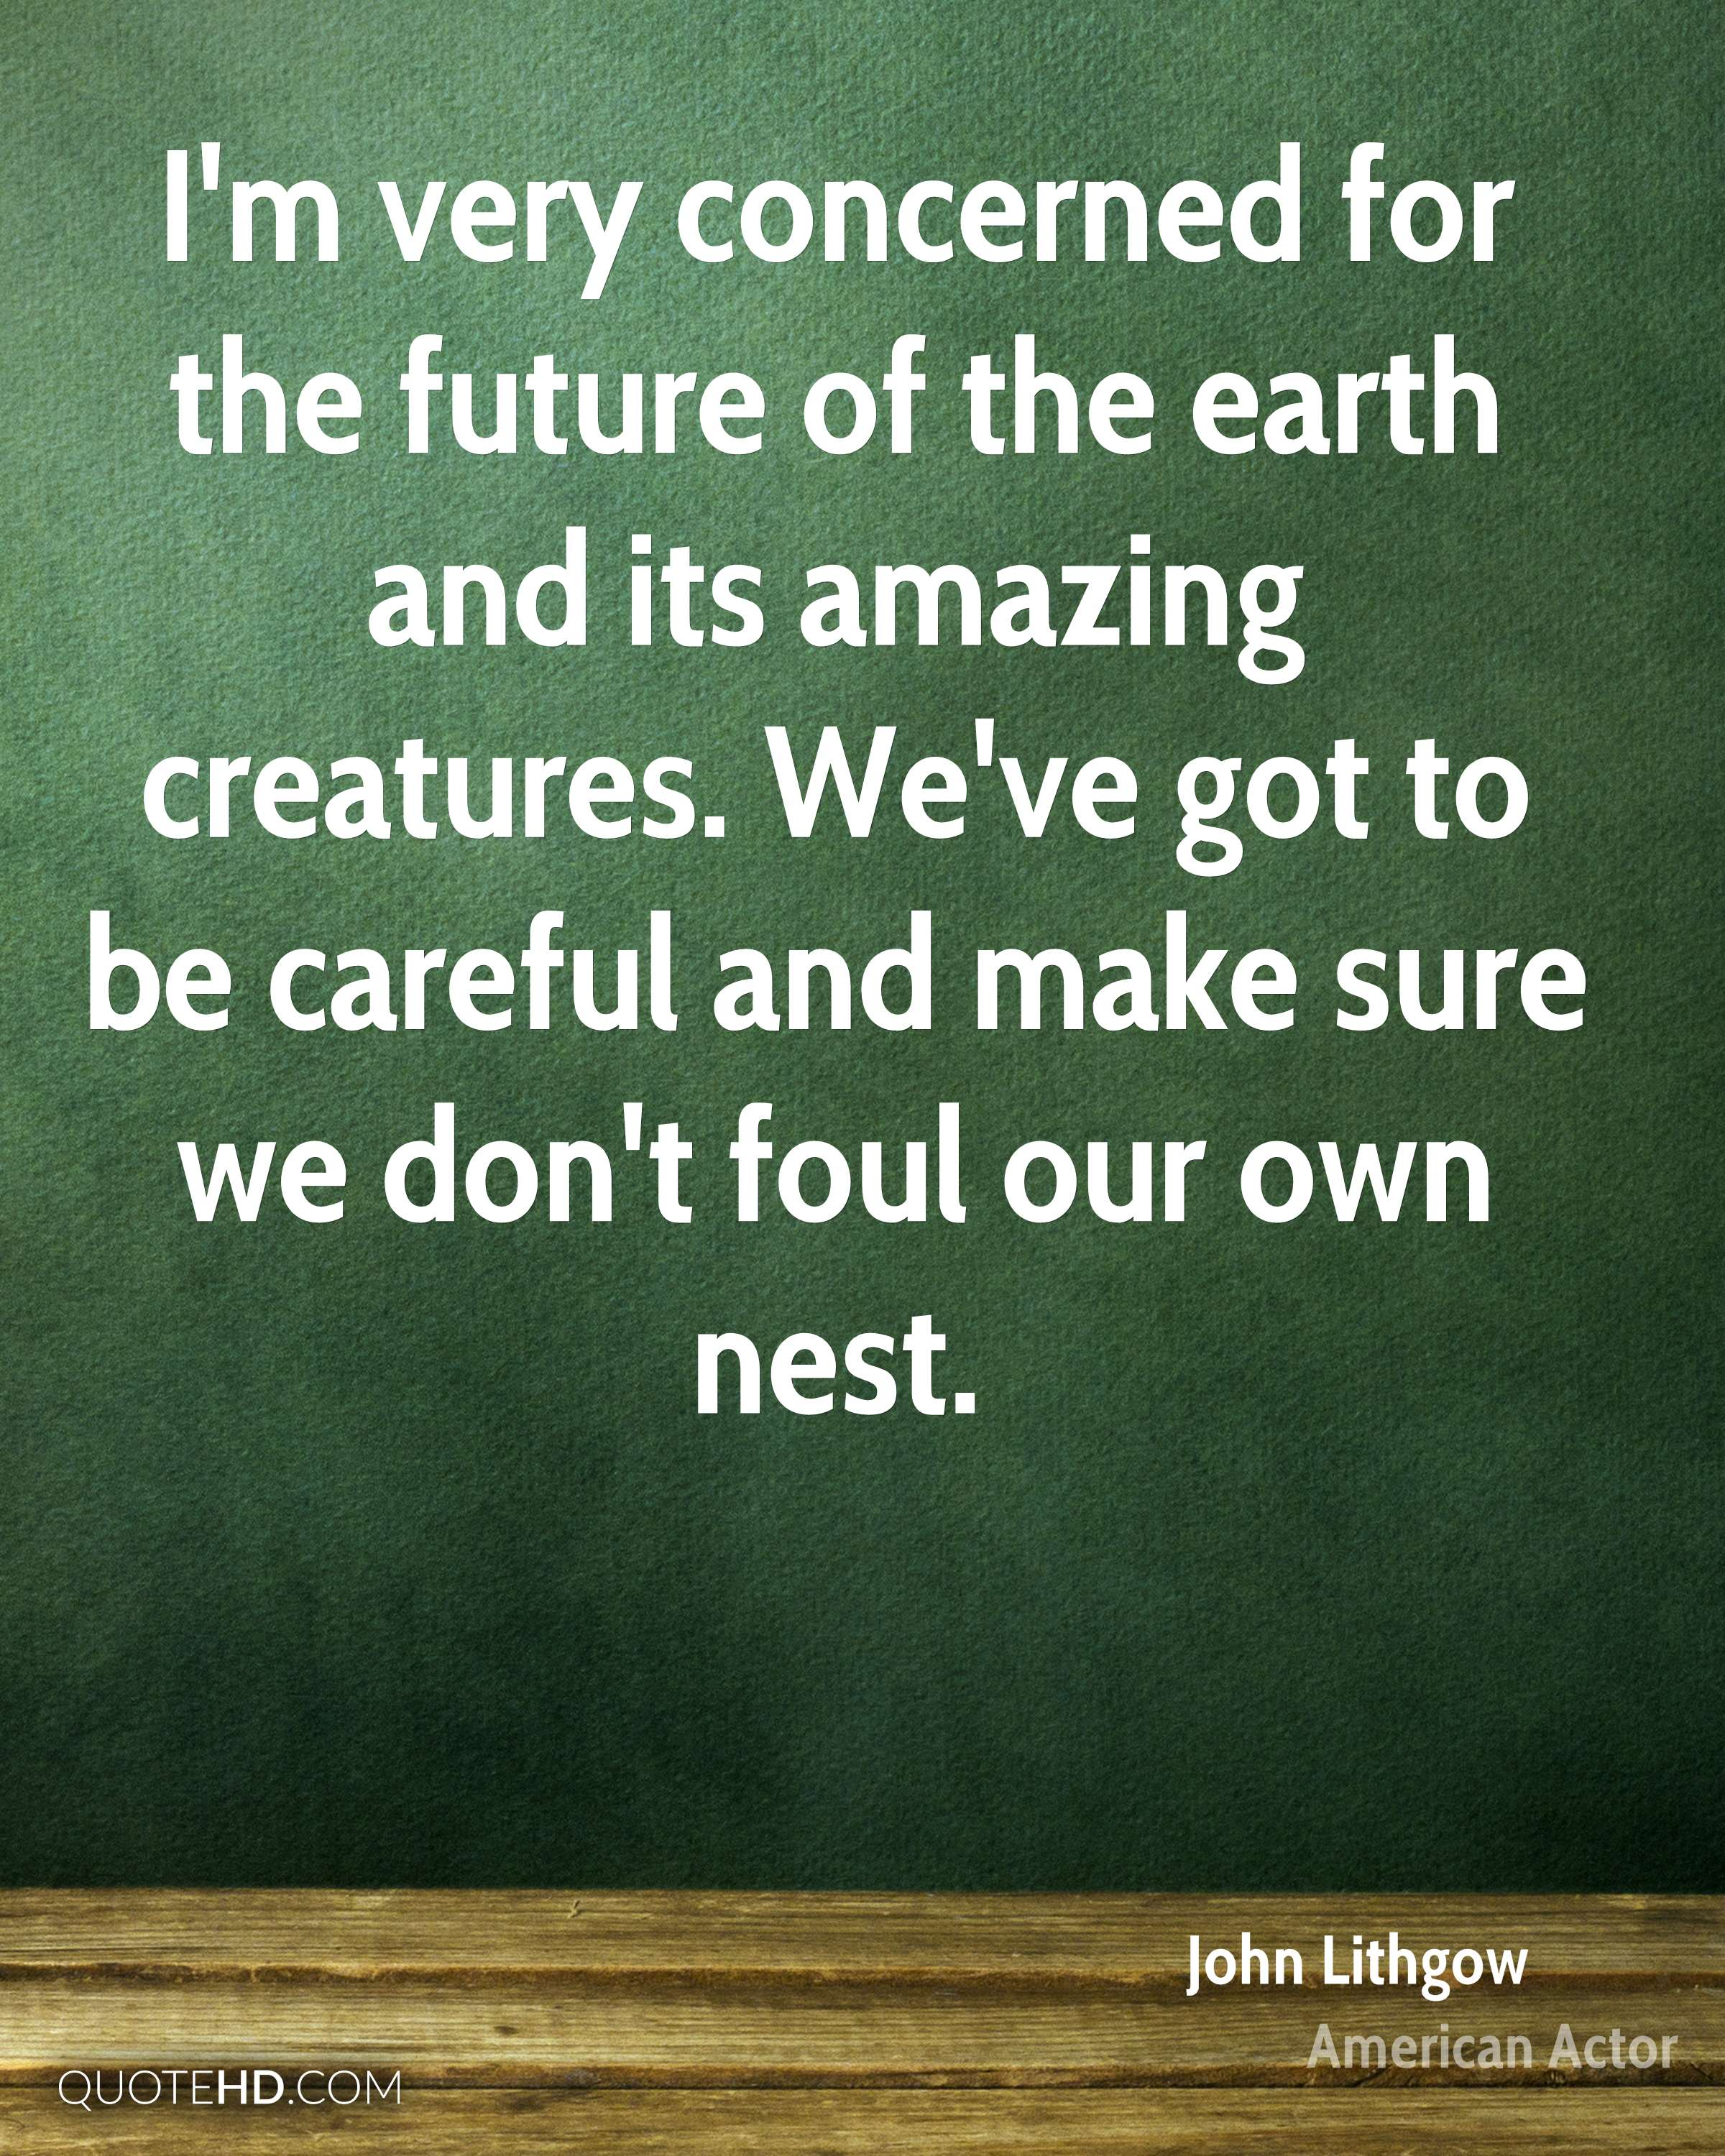 I'm very concerned for the future of the earth and its amazing creatures. We've got to be careful and make sure we don't foul our own nest.